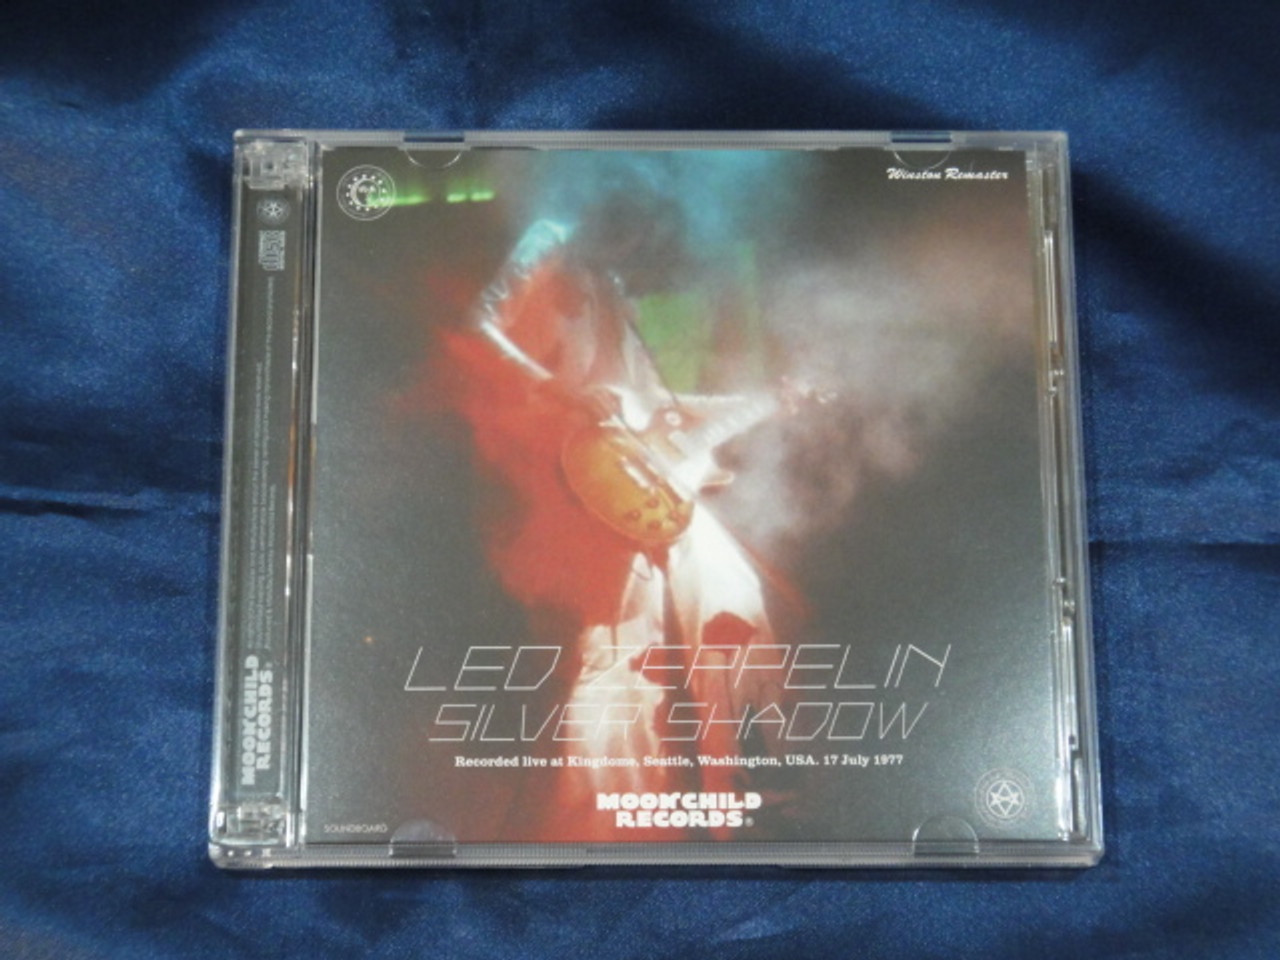 Led Zeppelin Silver Shadow 3 CD Moonchild Records